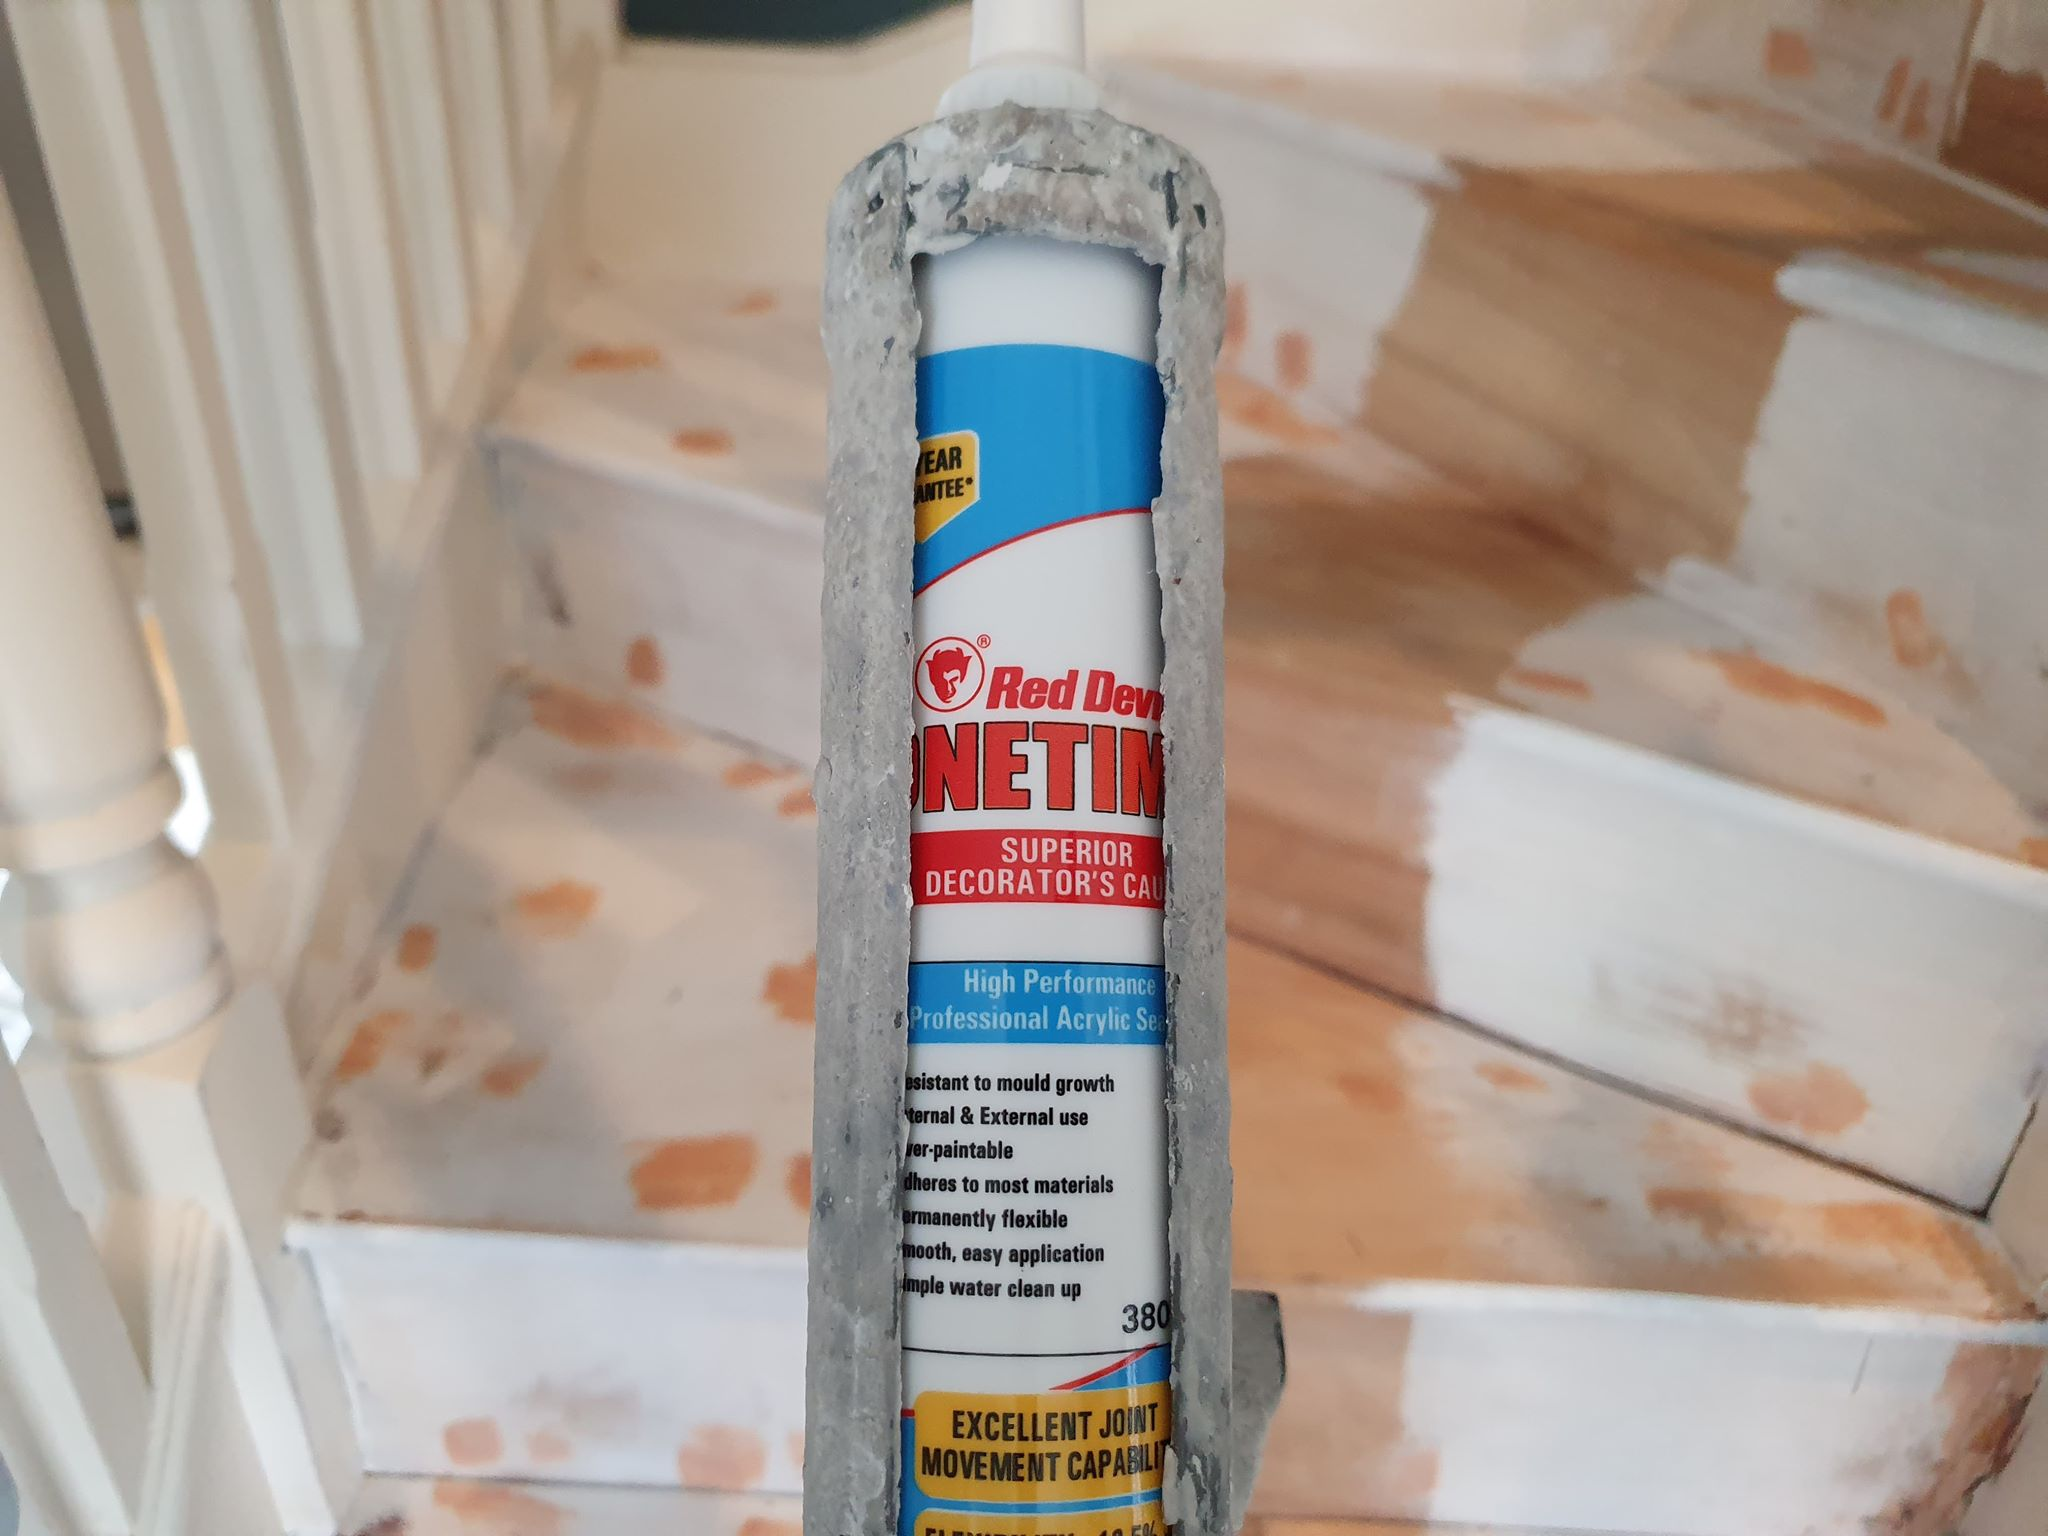 Ciret OneTime Decorators Caulk